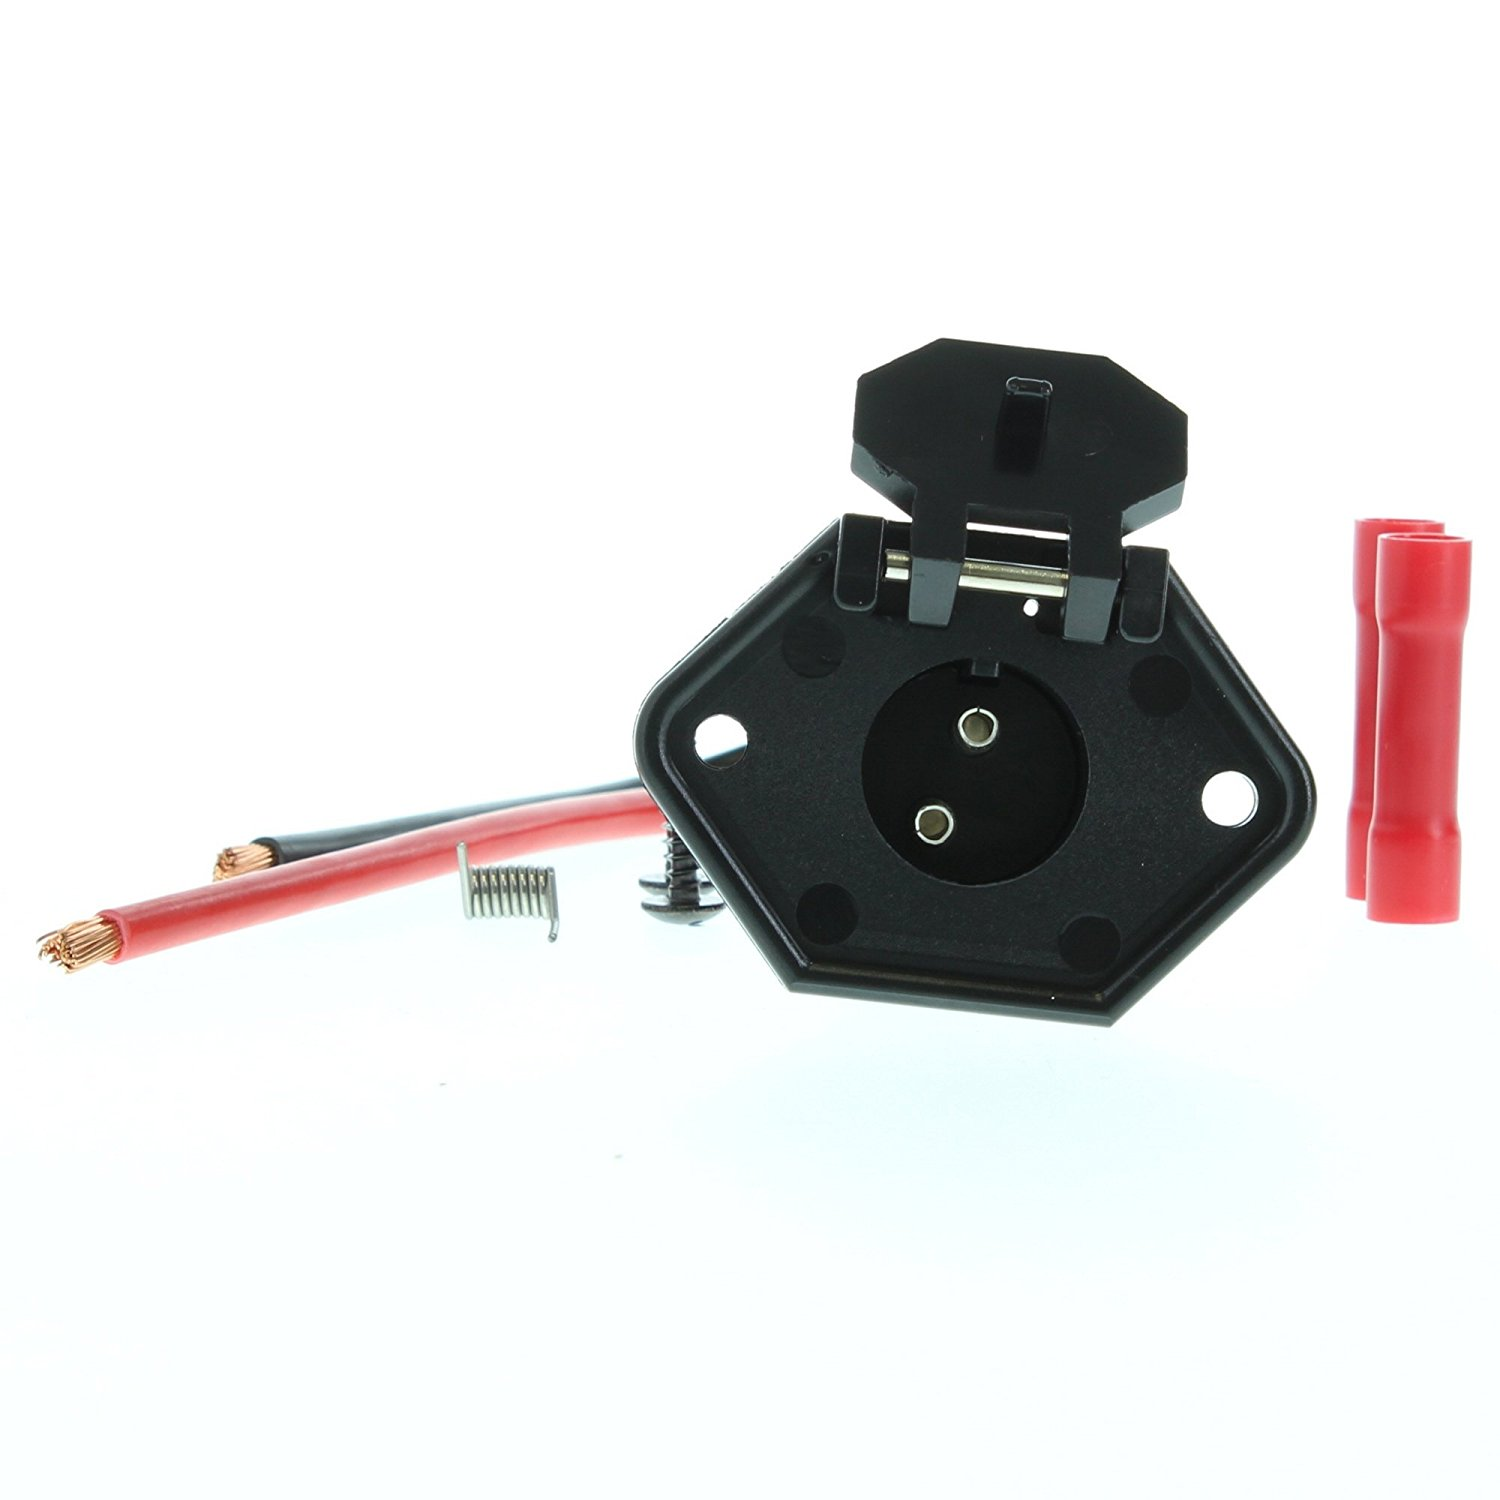 Buy Seasense Male Boat Side Trolling Motor Connector With 8 Gauge 3 Plug Wiring Diagram Wire Connecter 2 Prong